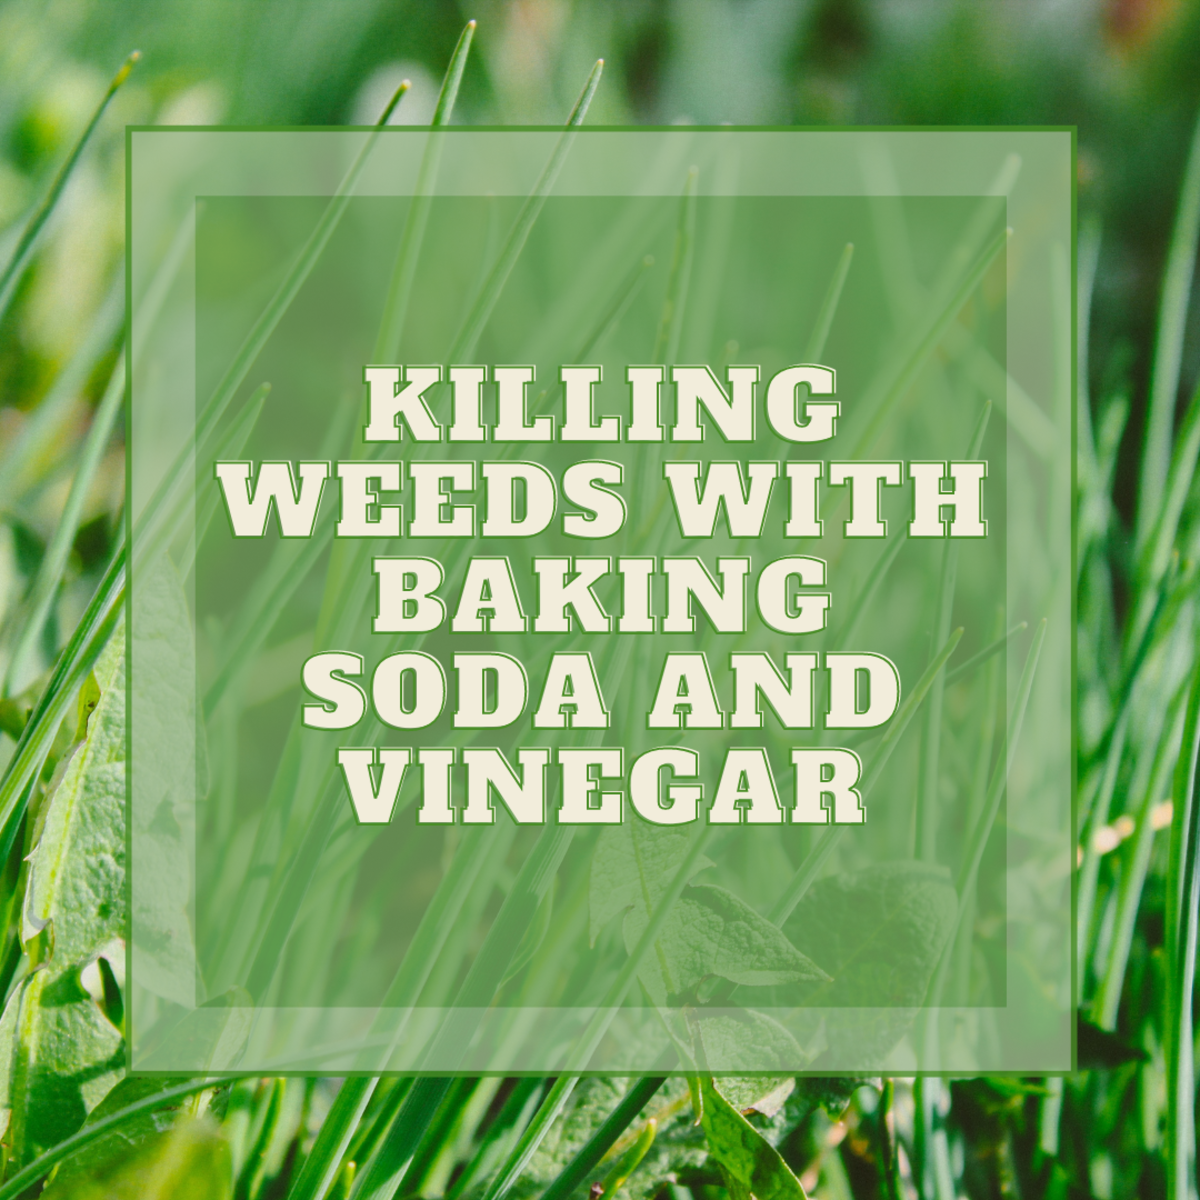 Learn how to use baking soda and vinegar to kill pesky weeds